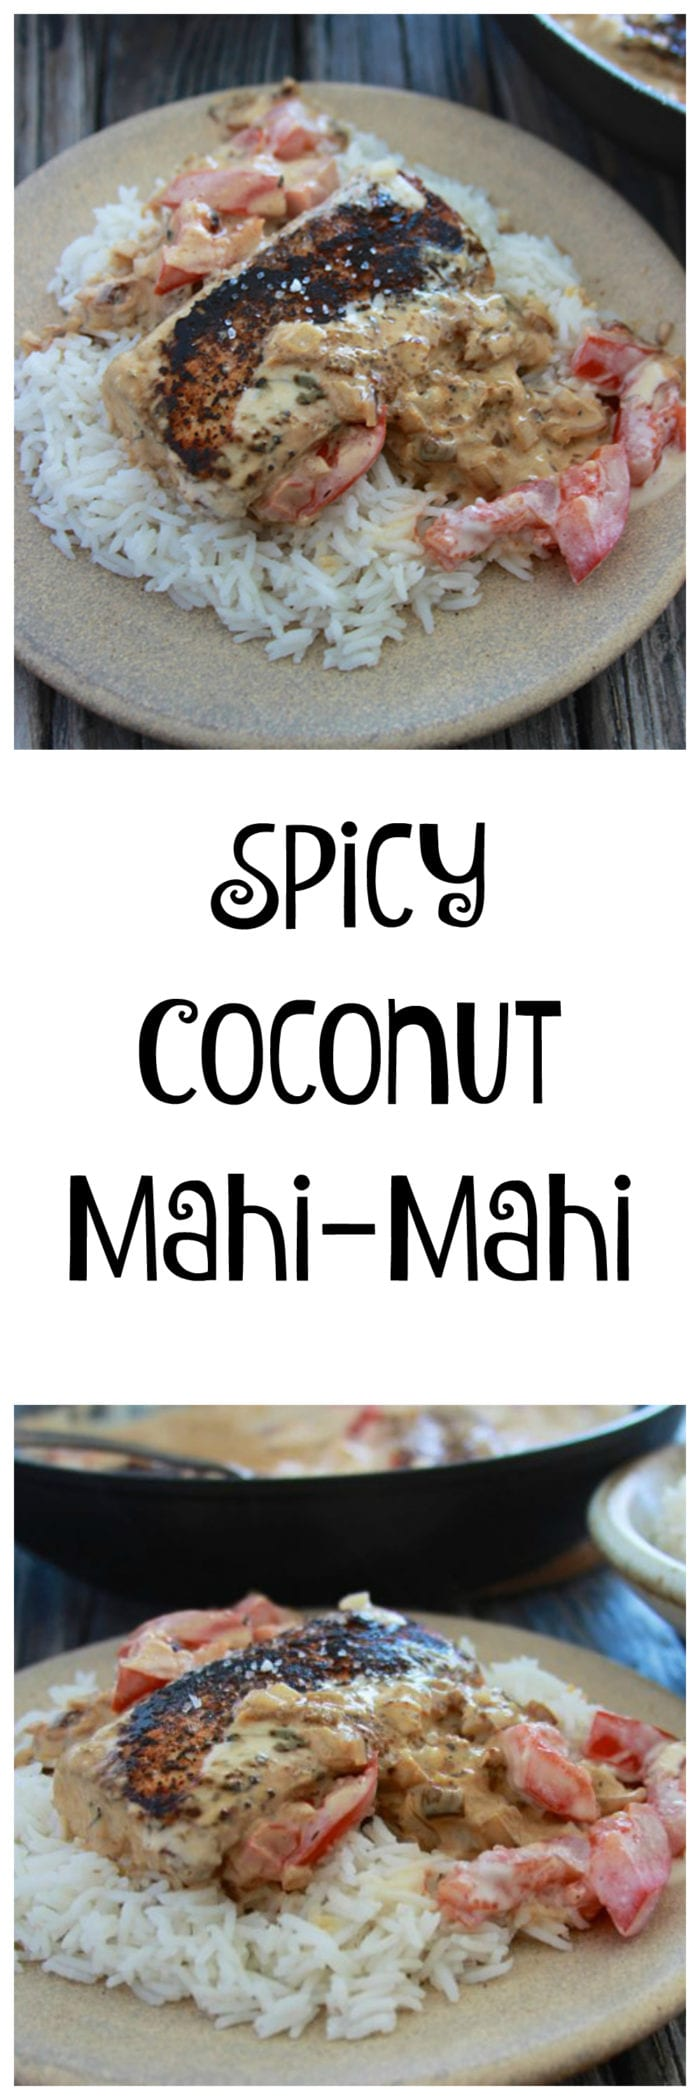 Spicy Coconut Mahi-Mahi is easy and ready in less than 30 minutes, it tastes like it came from a restaurant! www.cookingwithruthie.com